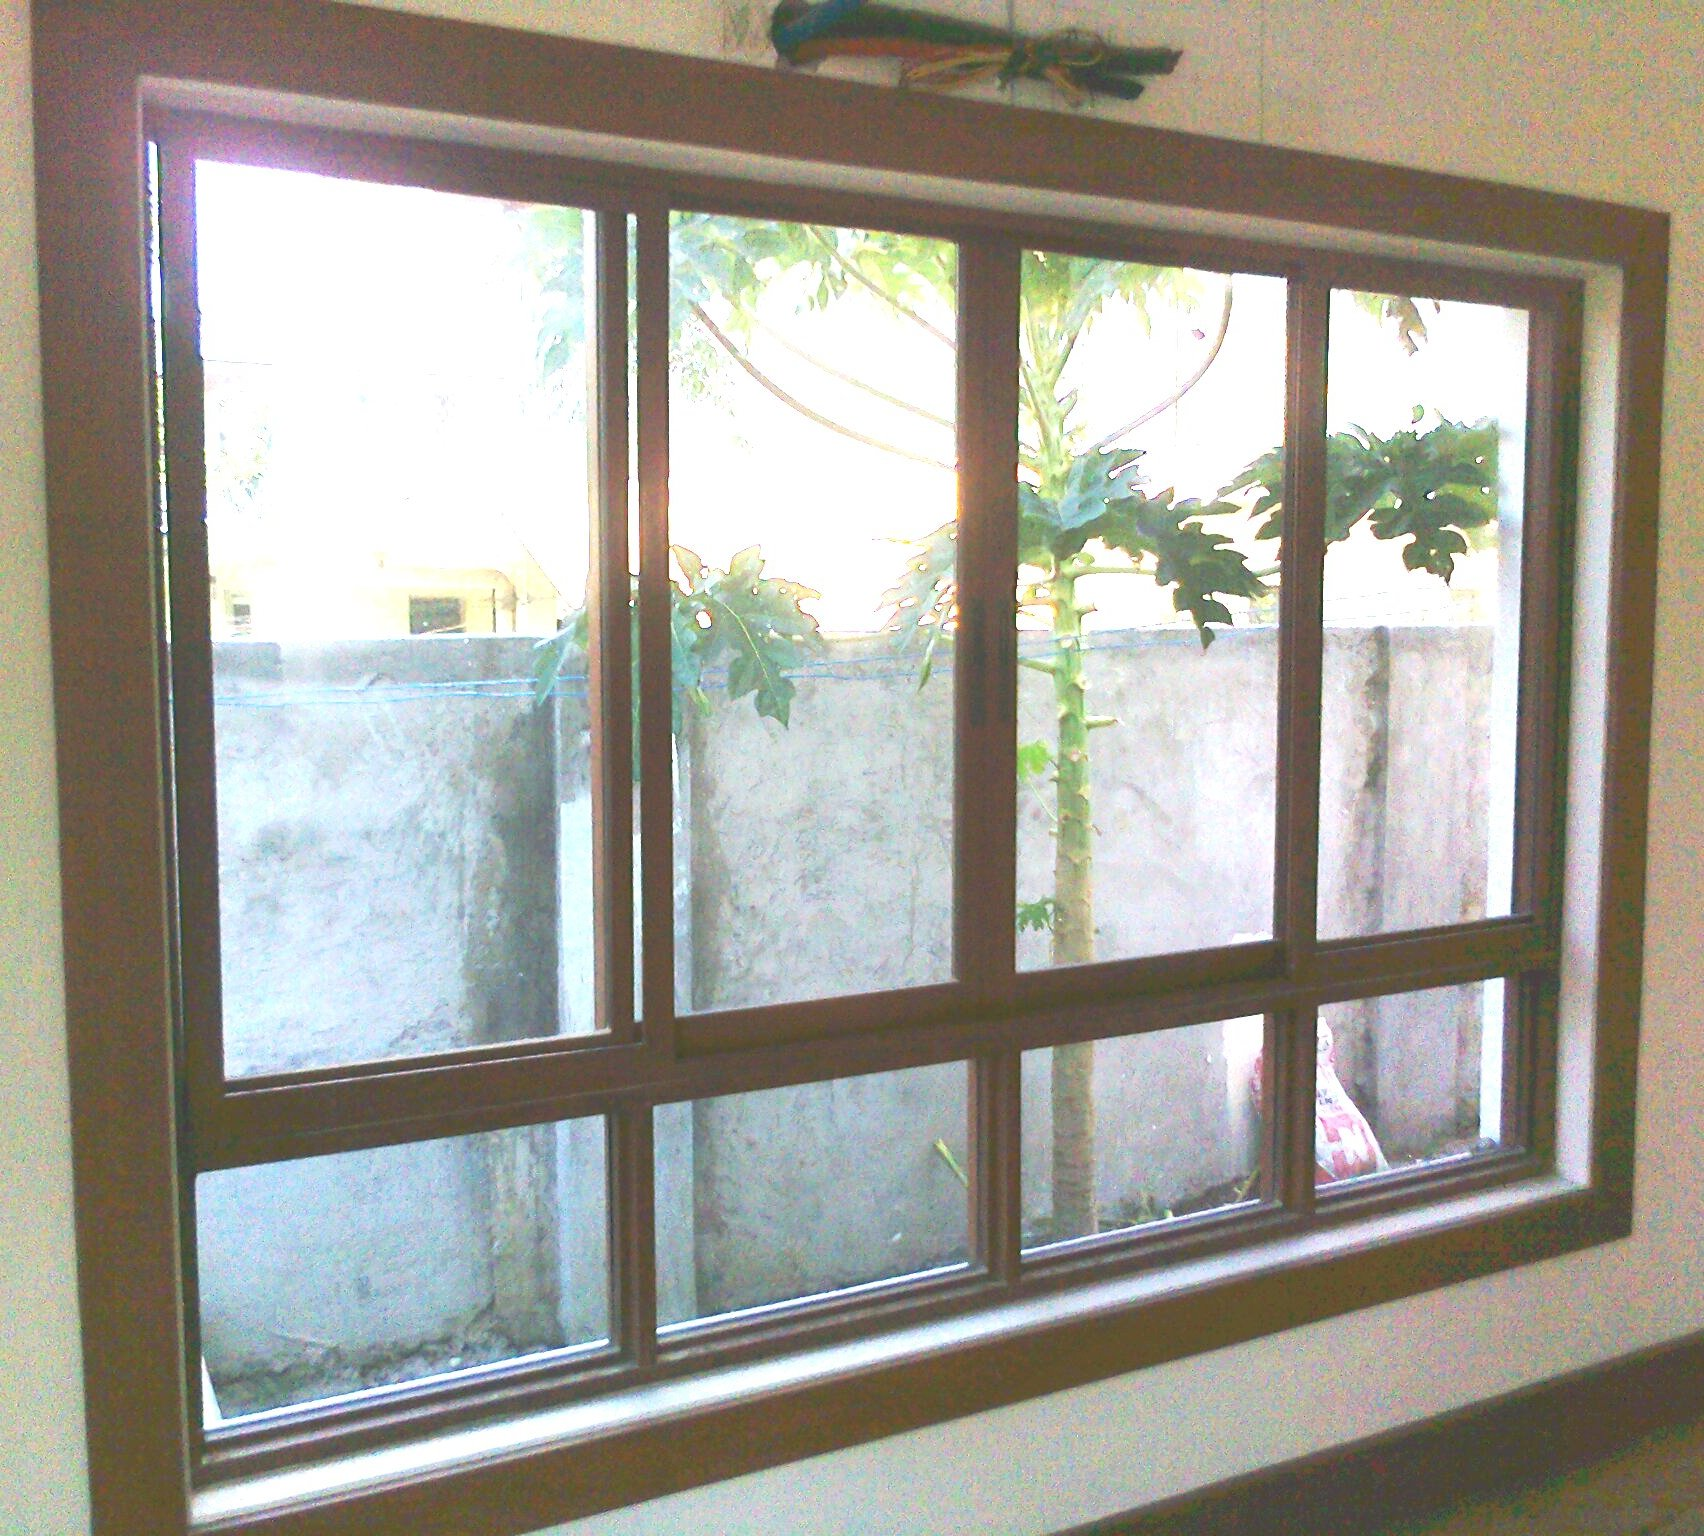 Fix slide slide fix window with screen for Sliding glass windows